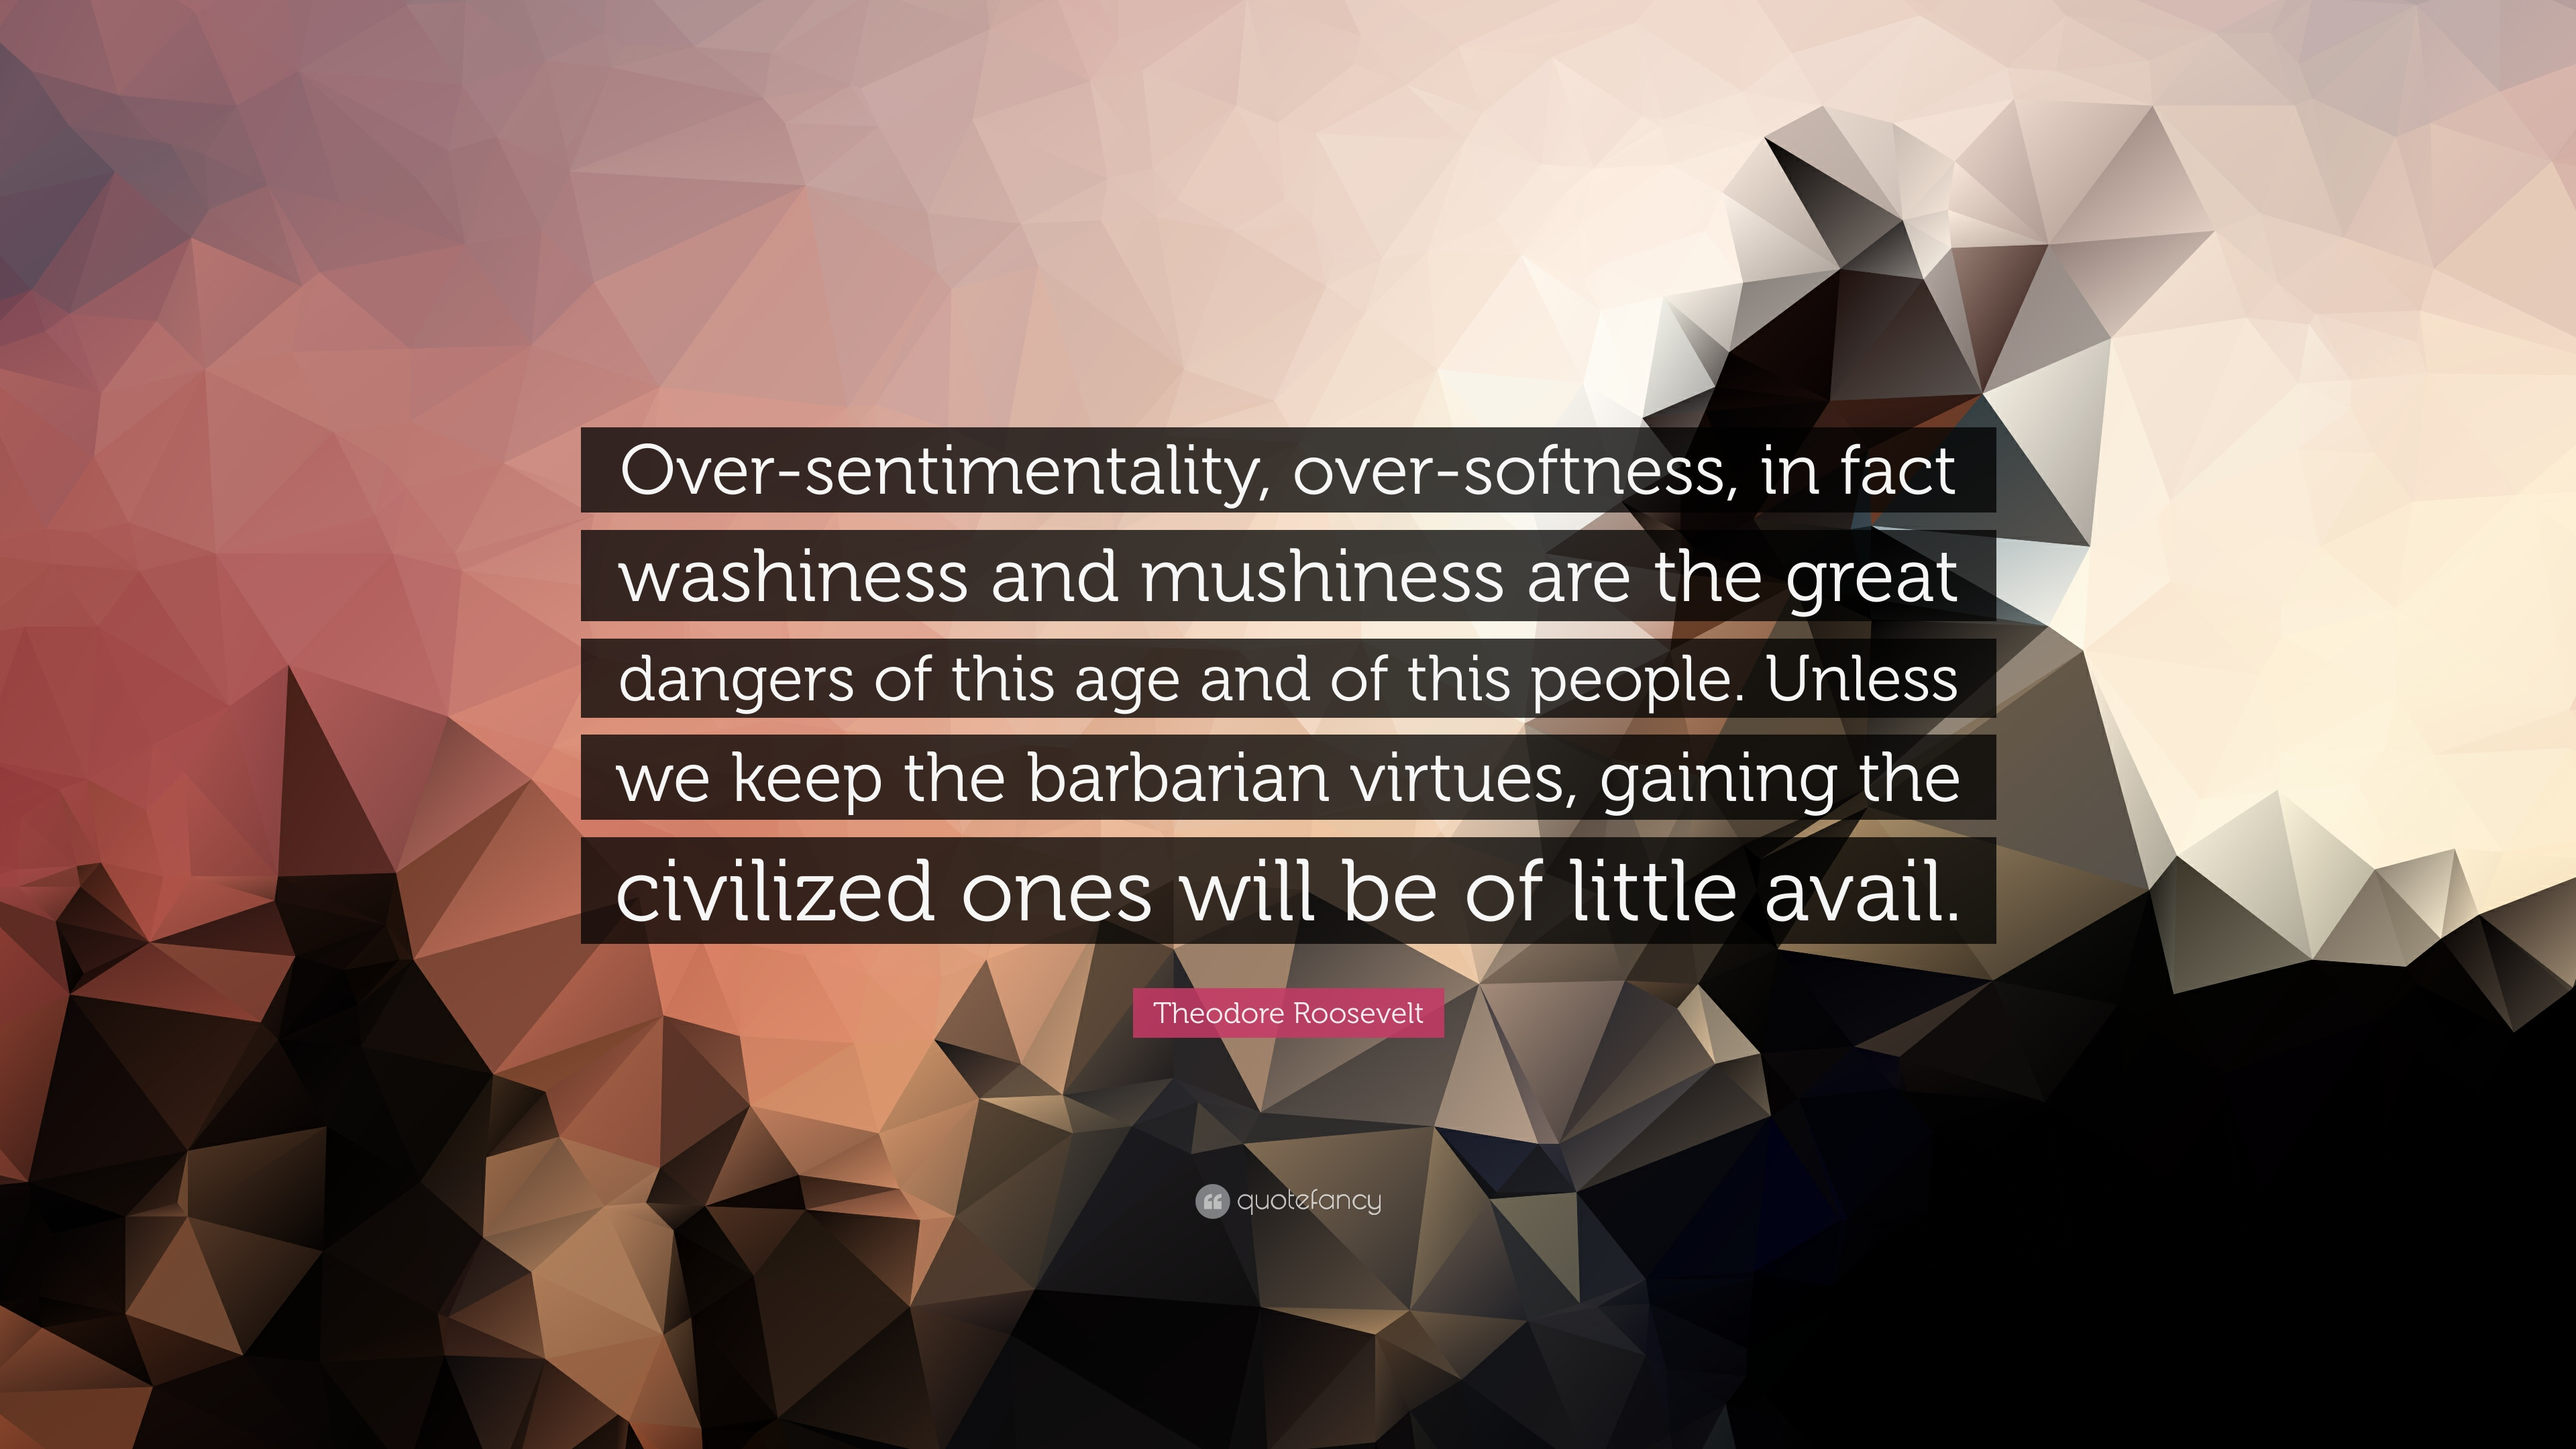 theodore roosevelt quote ldquo over sentimentality over softness in theodore roosevelt quote ldquoover sentimentality over softness in fact washiness